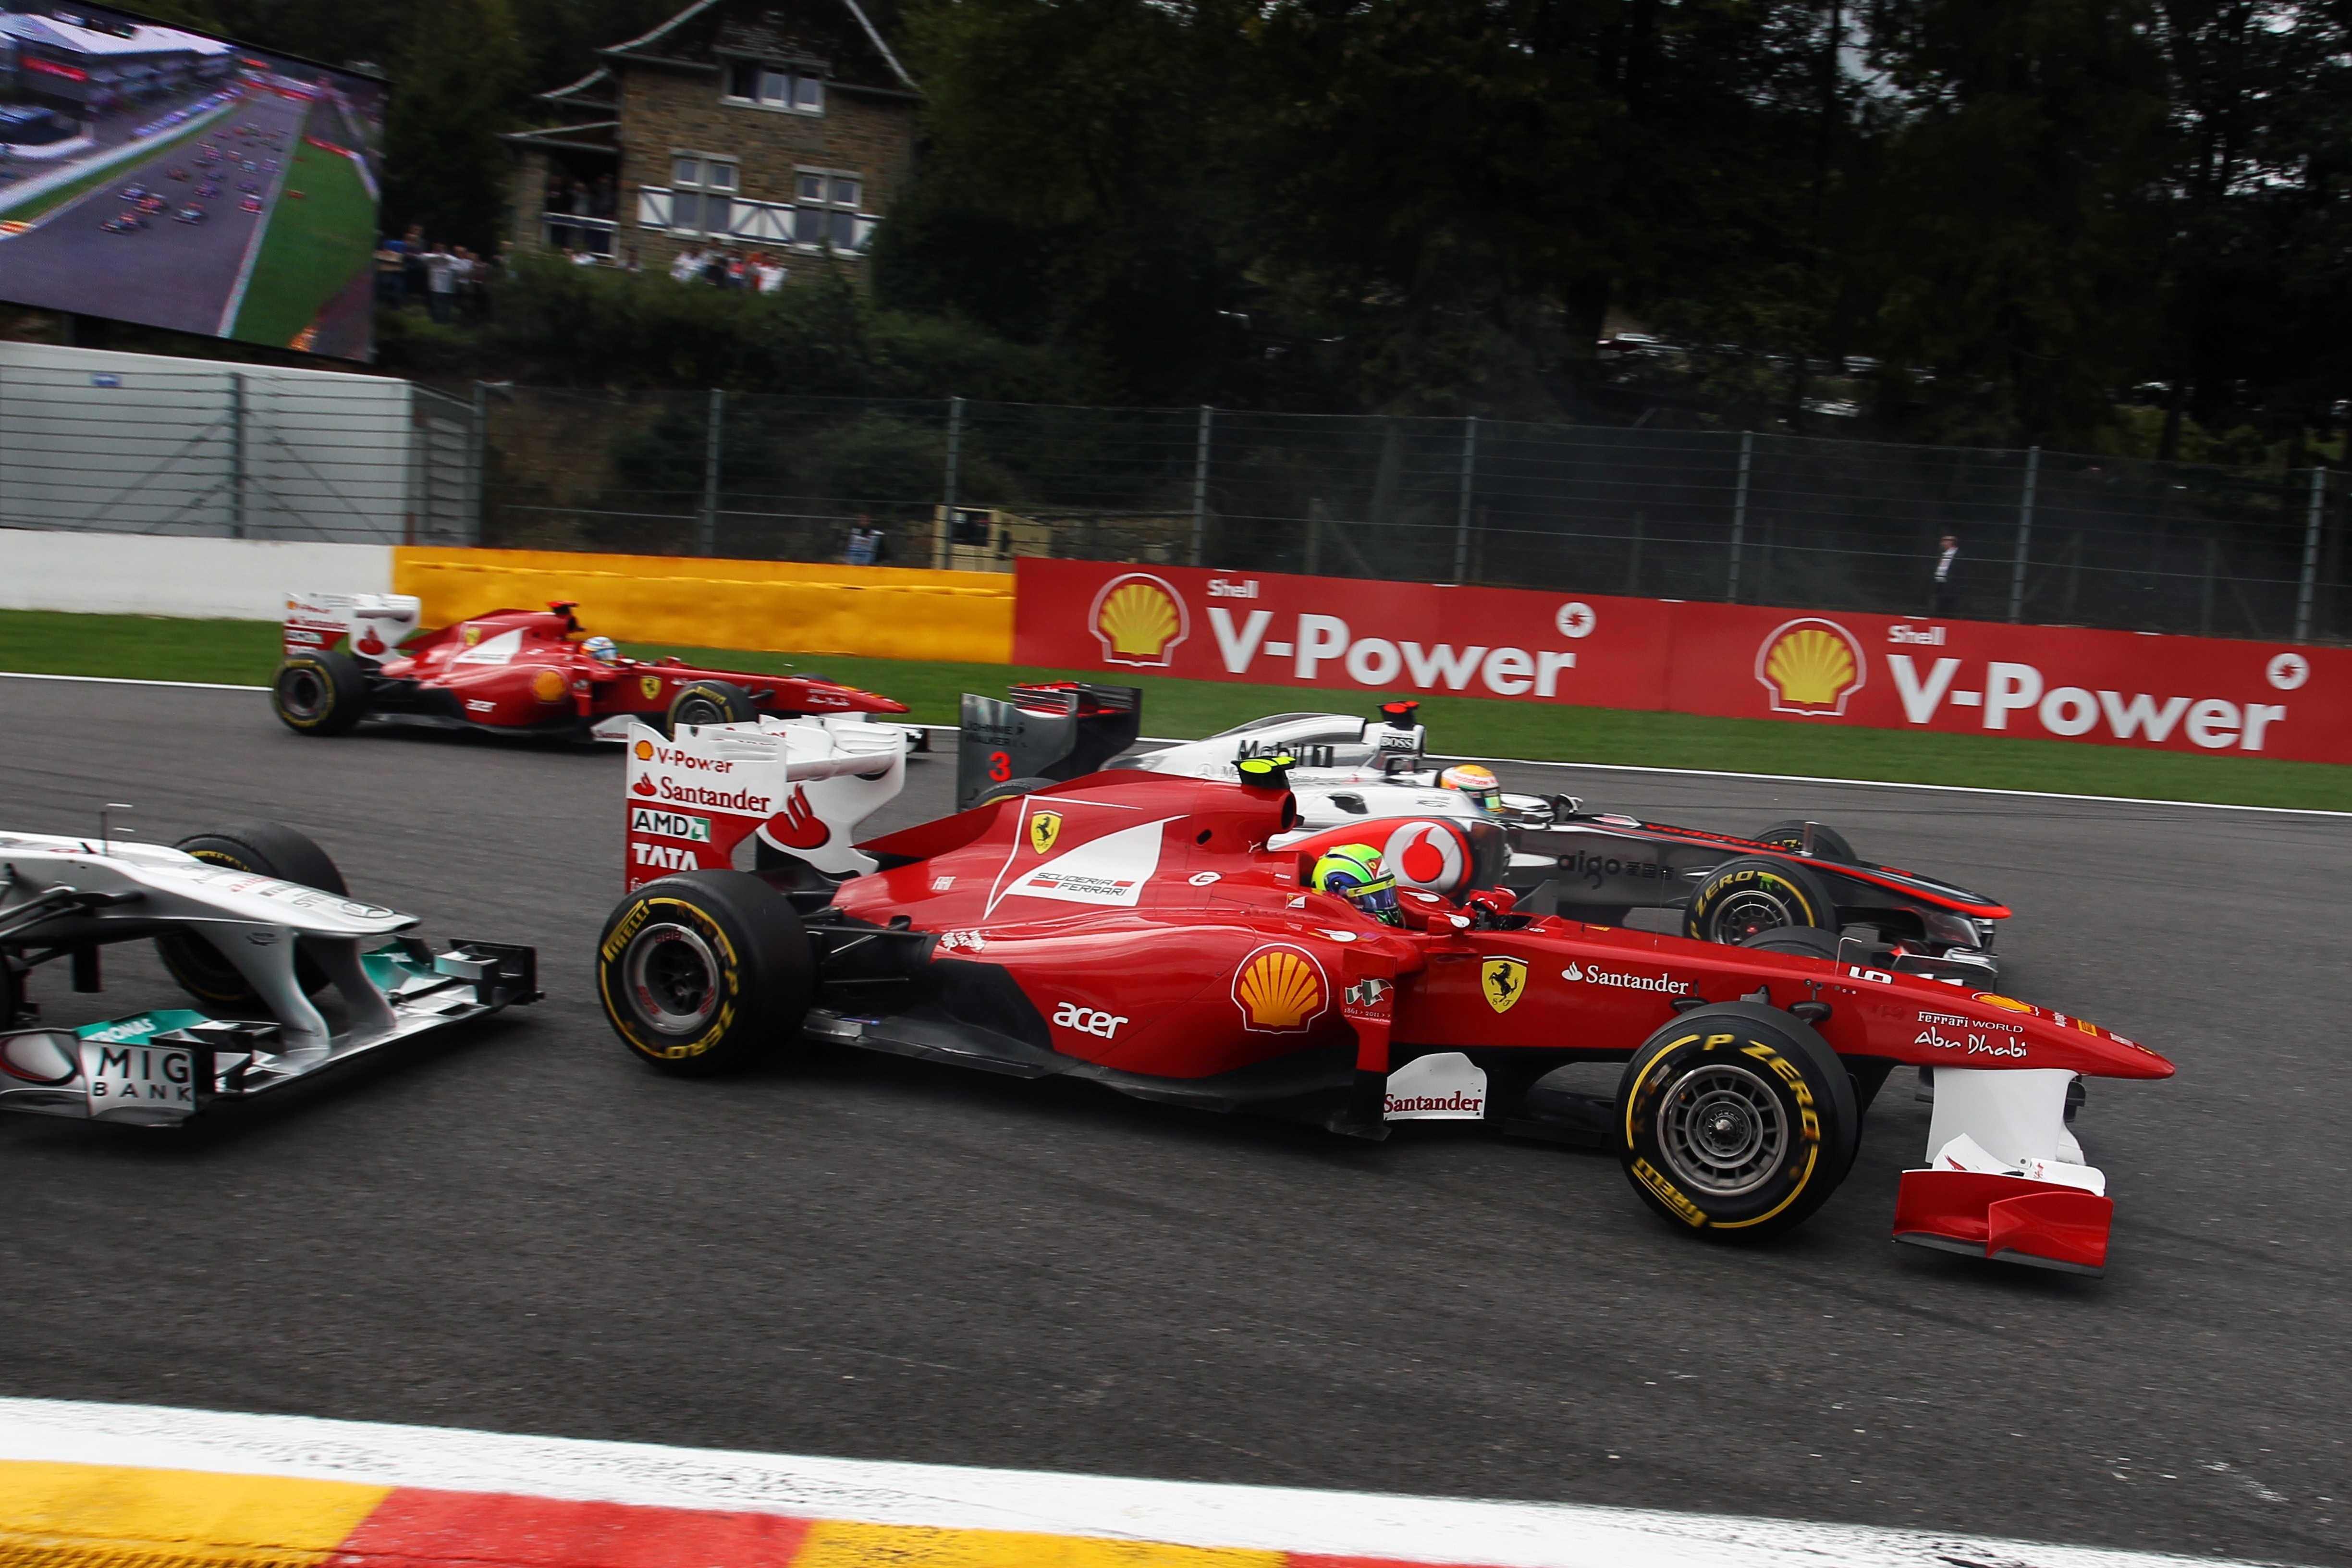 Spa Francorchamps cars Ferrari HD Wallpaper